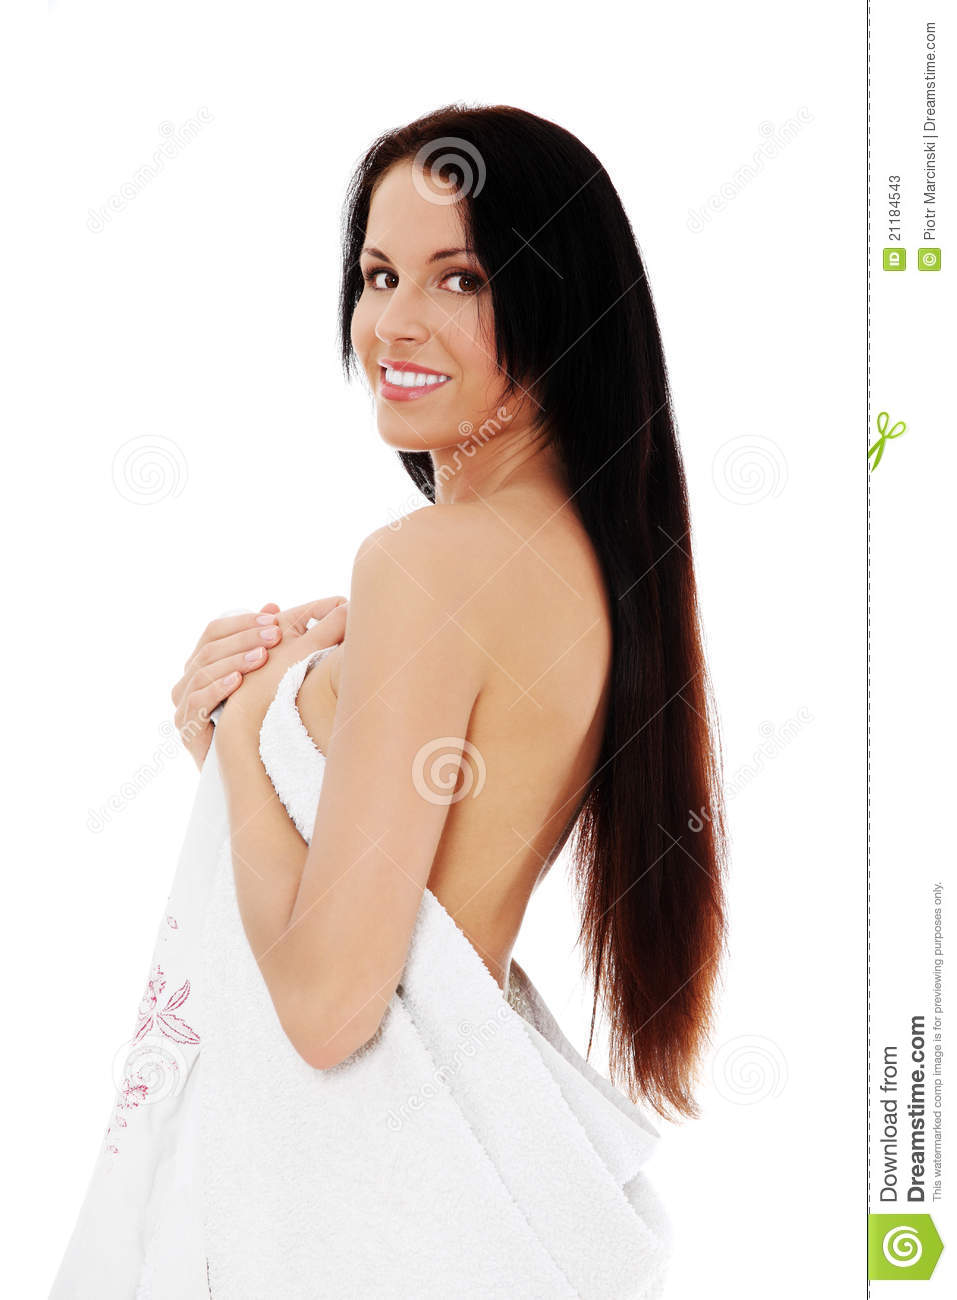 Young naked woman covering her self with towel